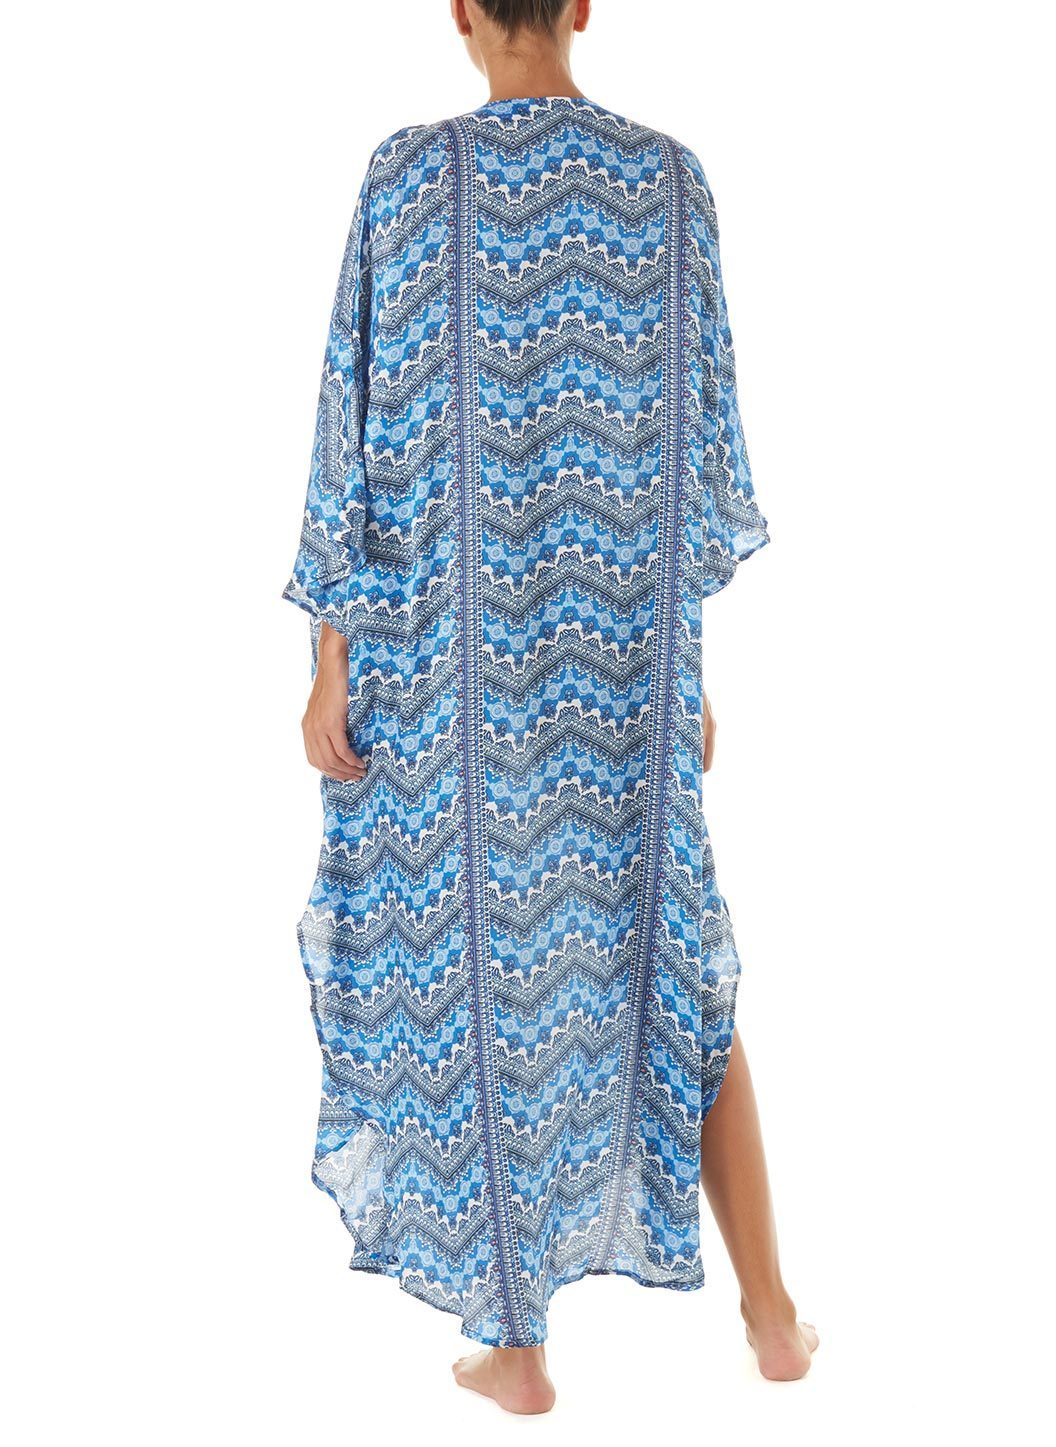 lola seabreeze laceup maxi dress 2019 B